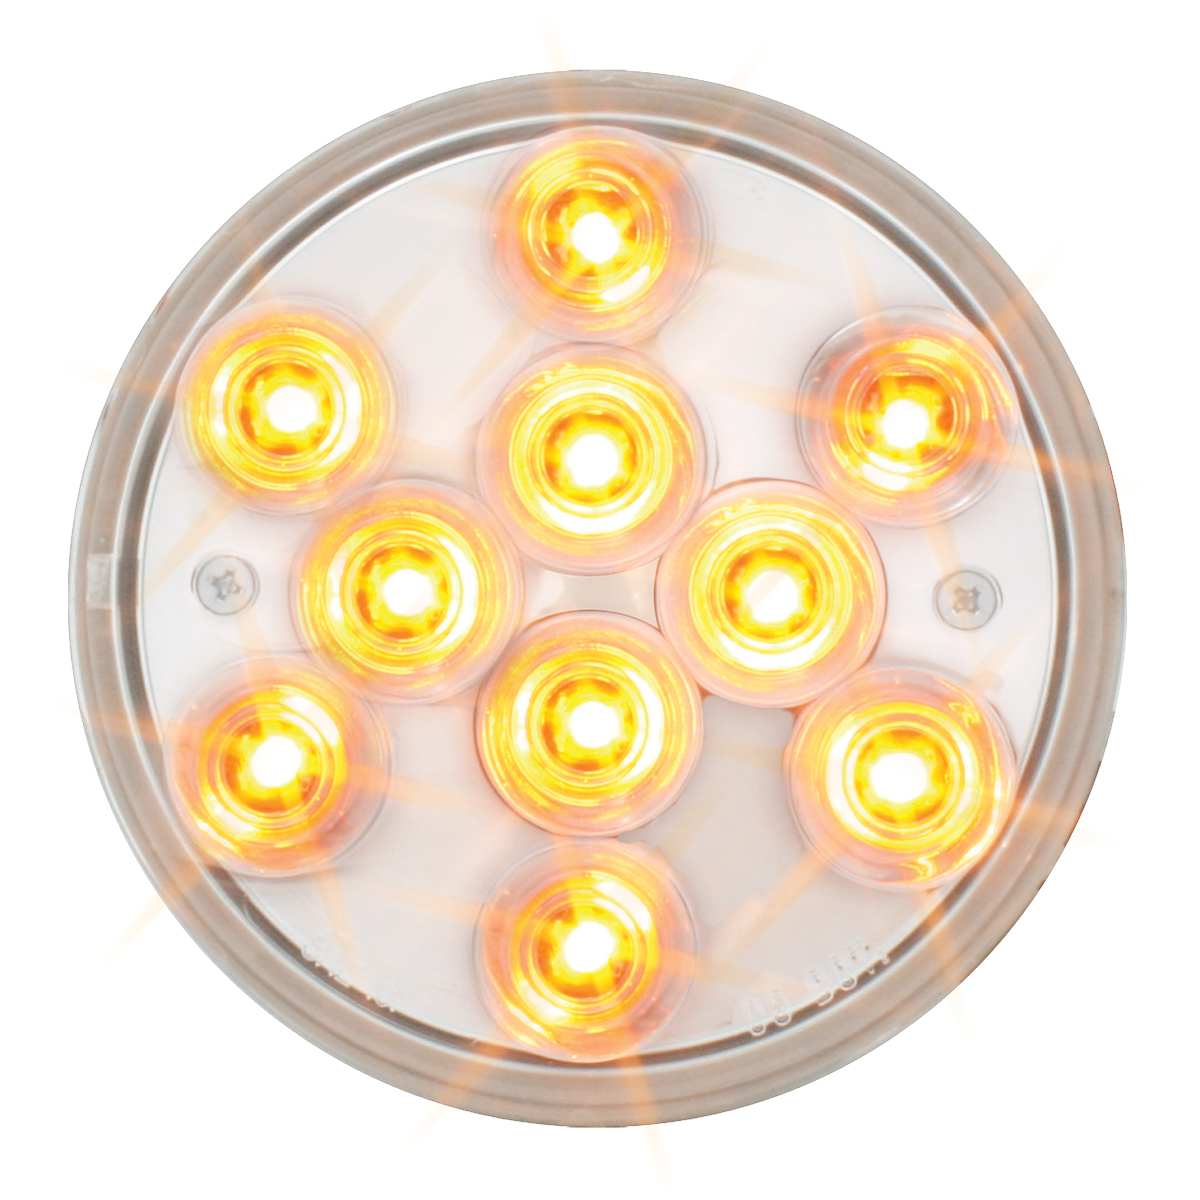 "76841 4"" Mega 10 Plus LED Light in Amber/Clear"